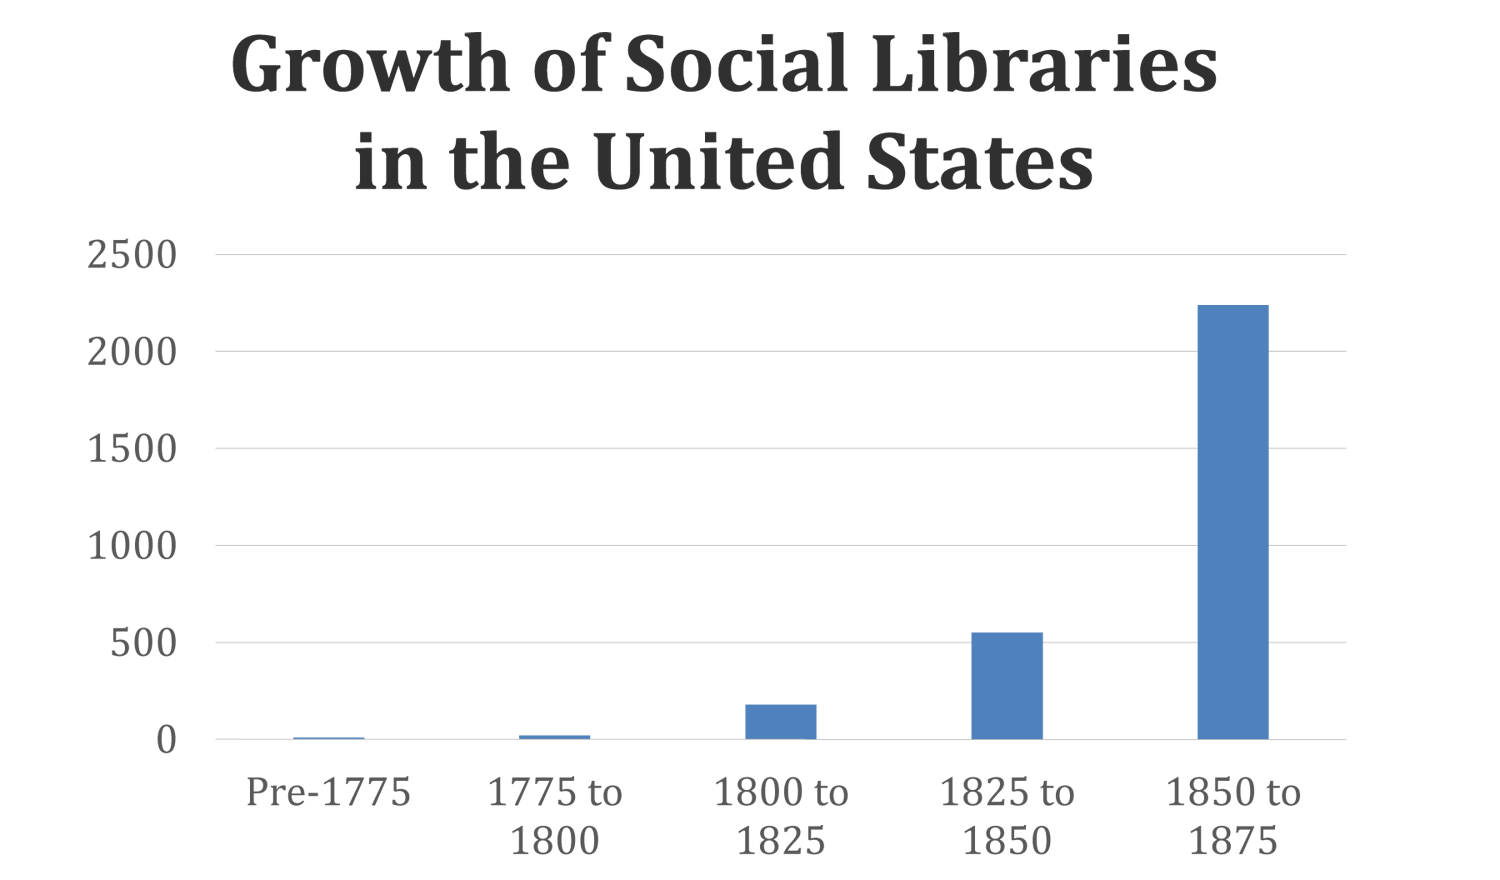 Growth of Social Libraries in the United States